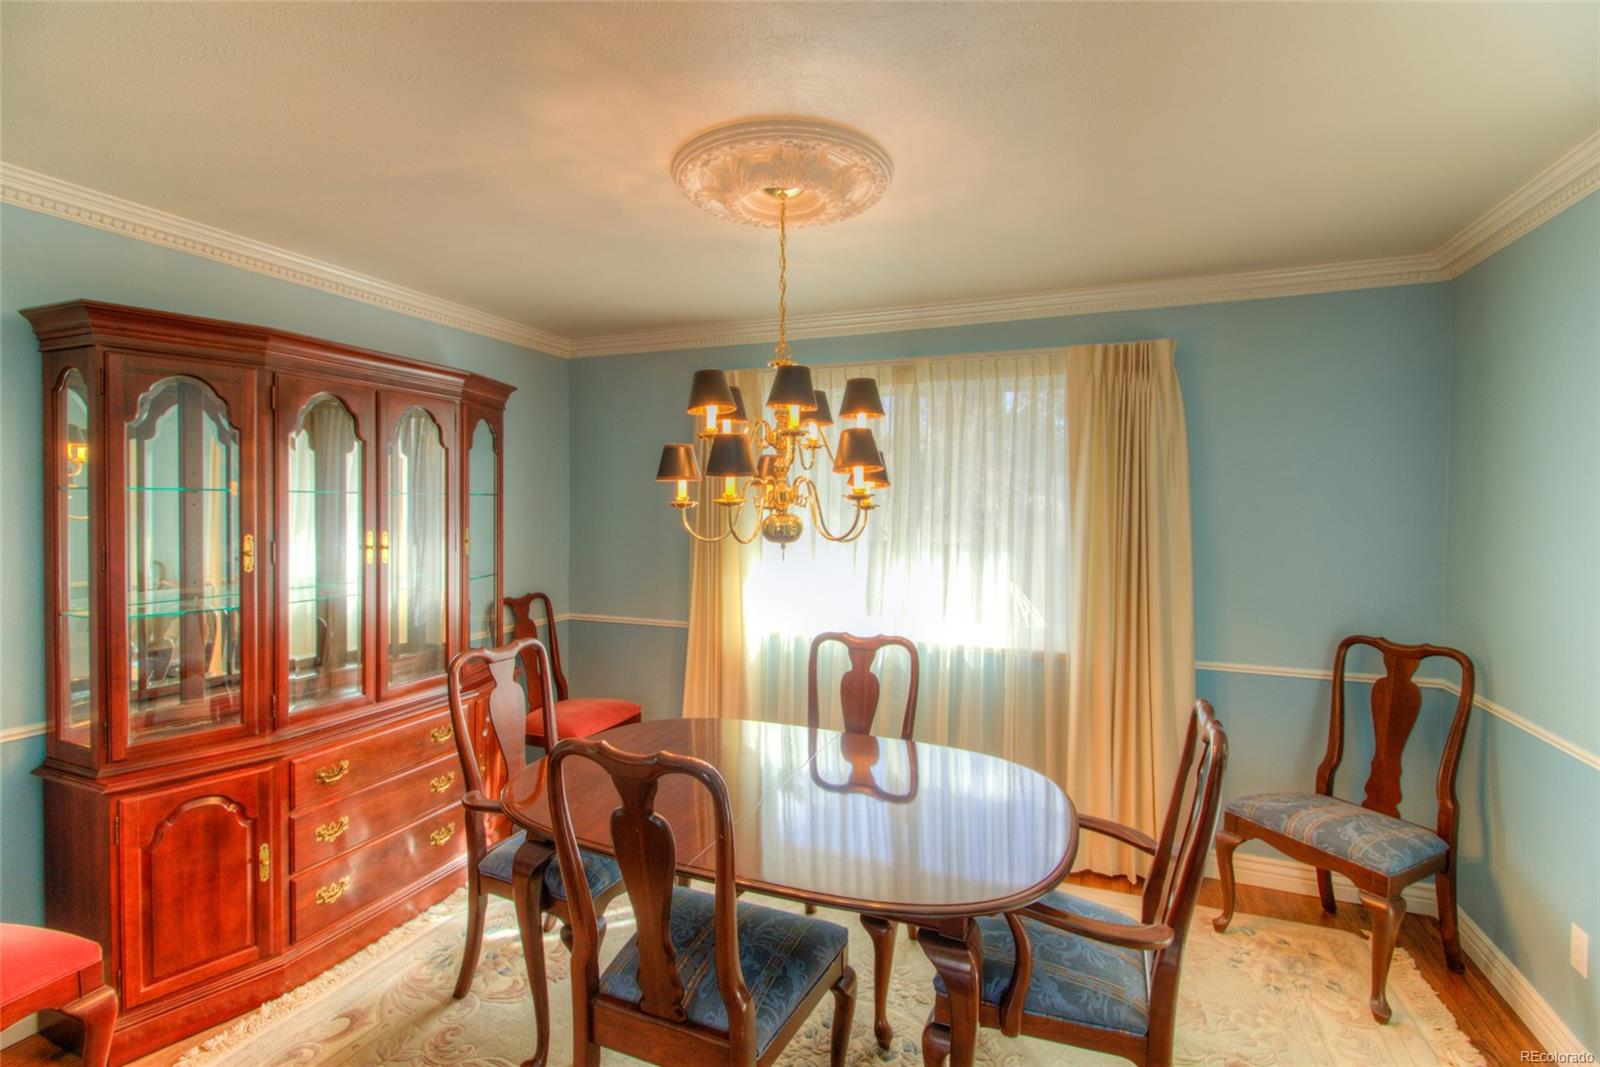 Formal dining room with crown molding and refinished hardwood floors